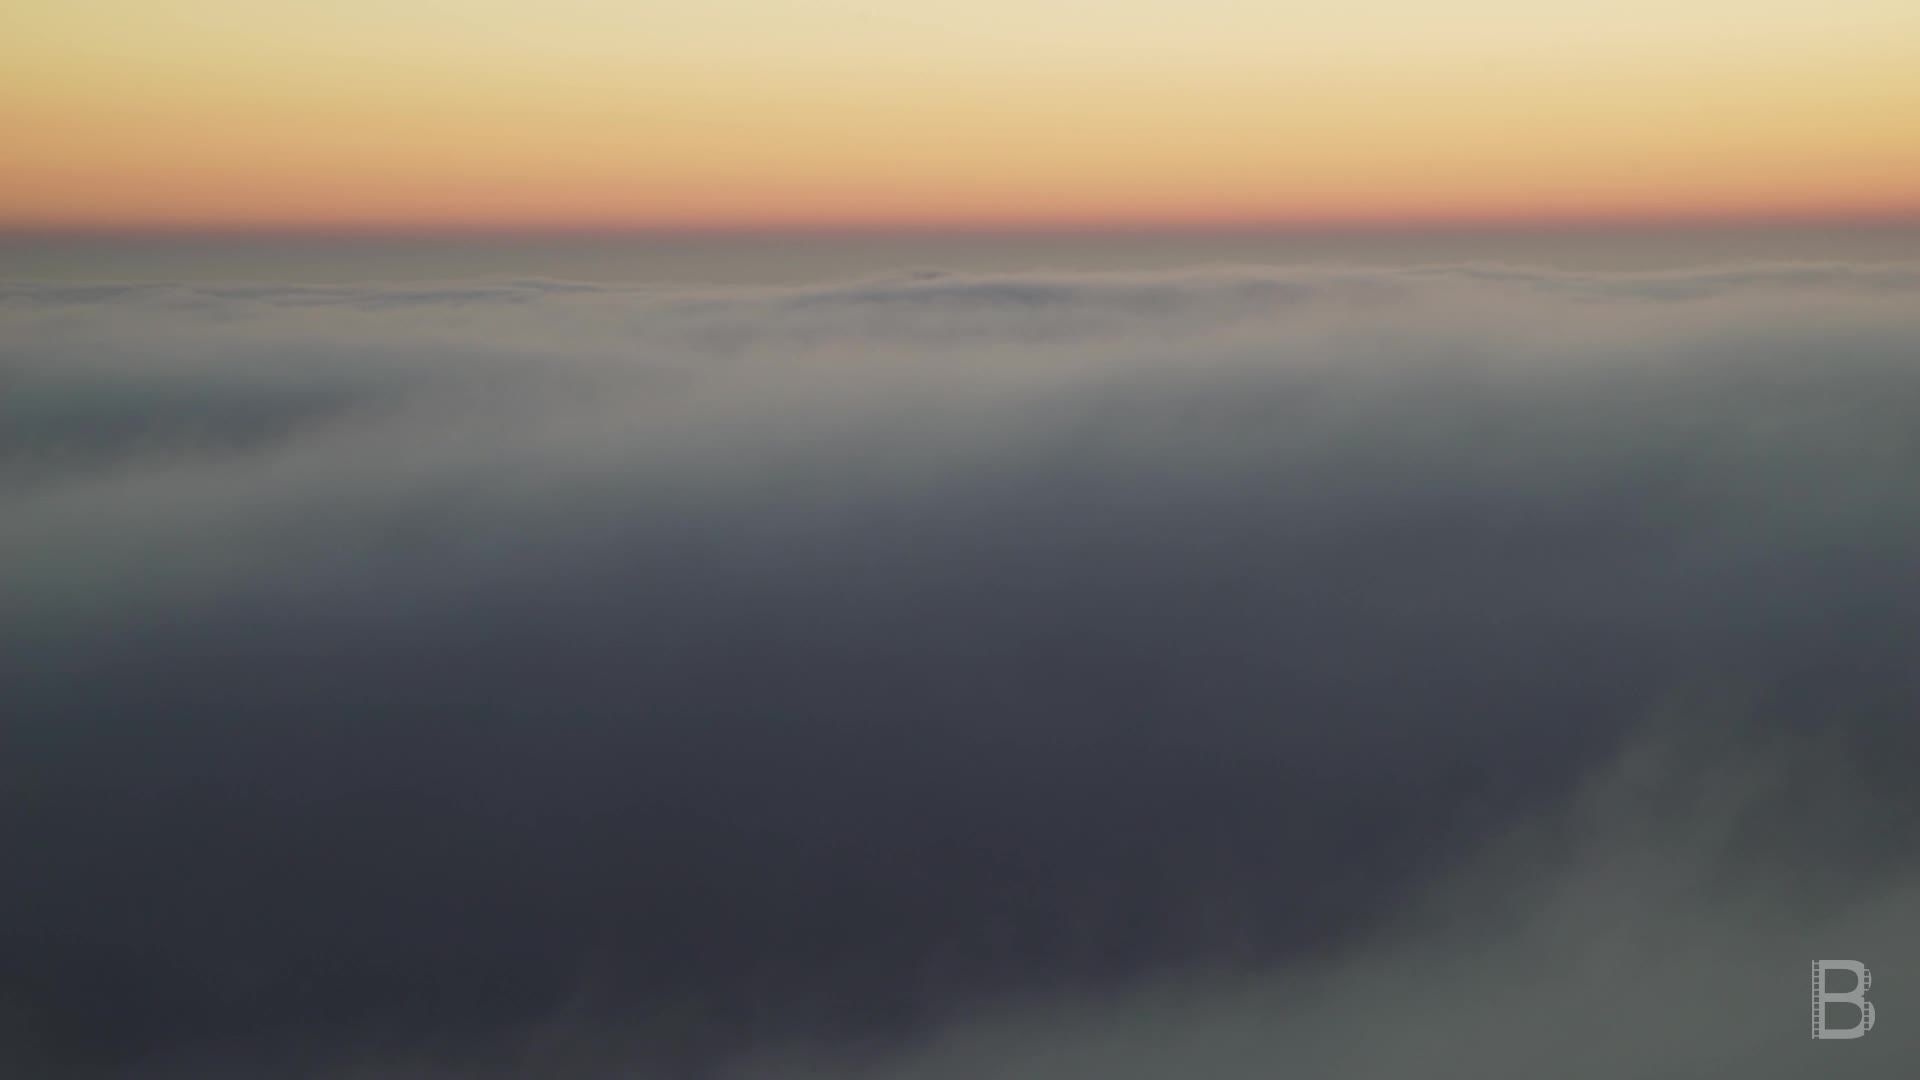 BELLA Presents: daily bello S1 Ep23 Clouds Passing